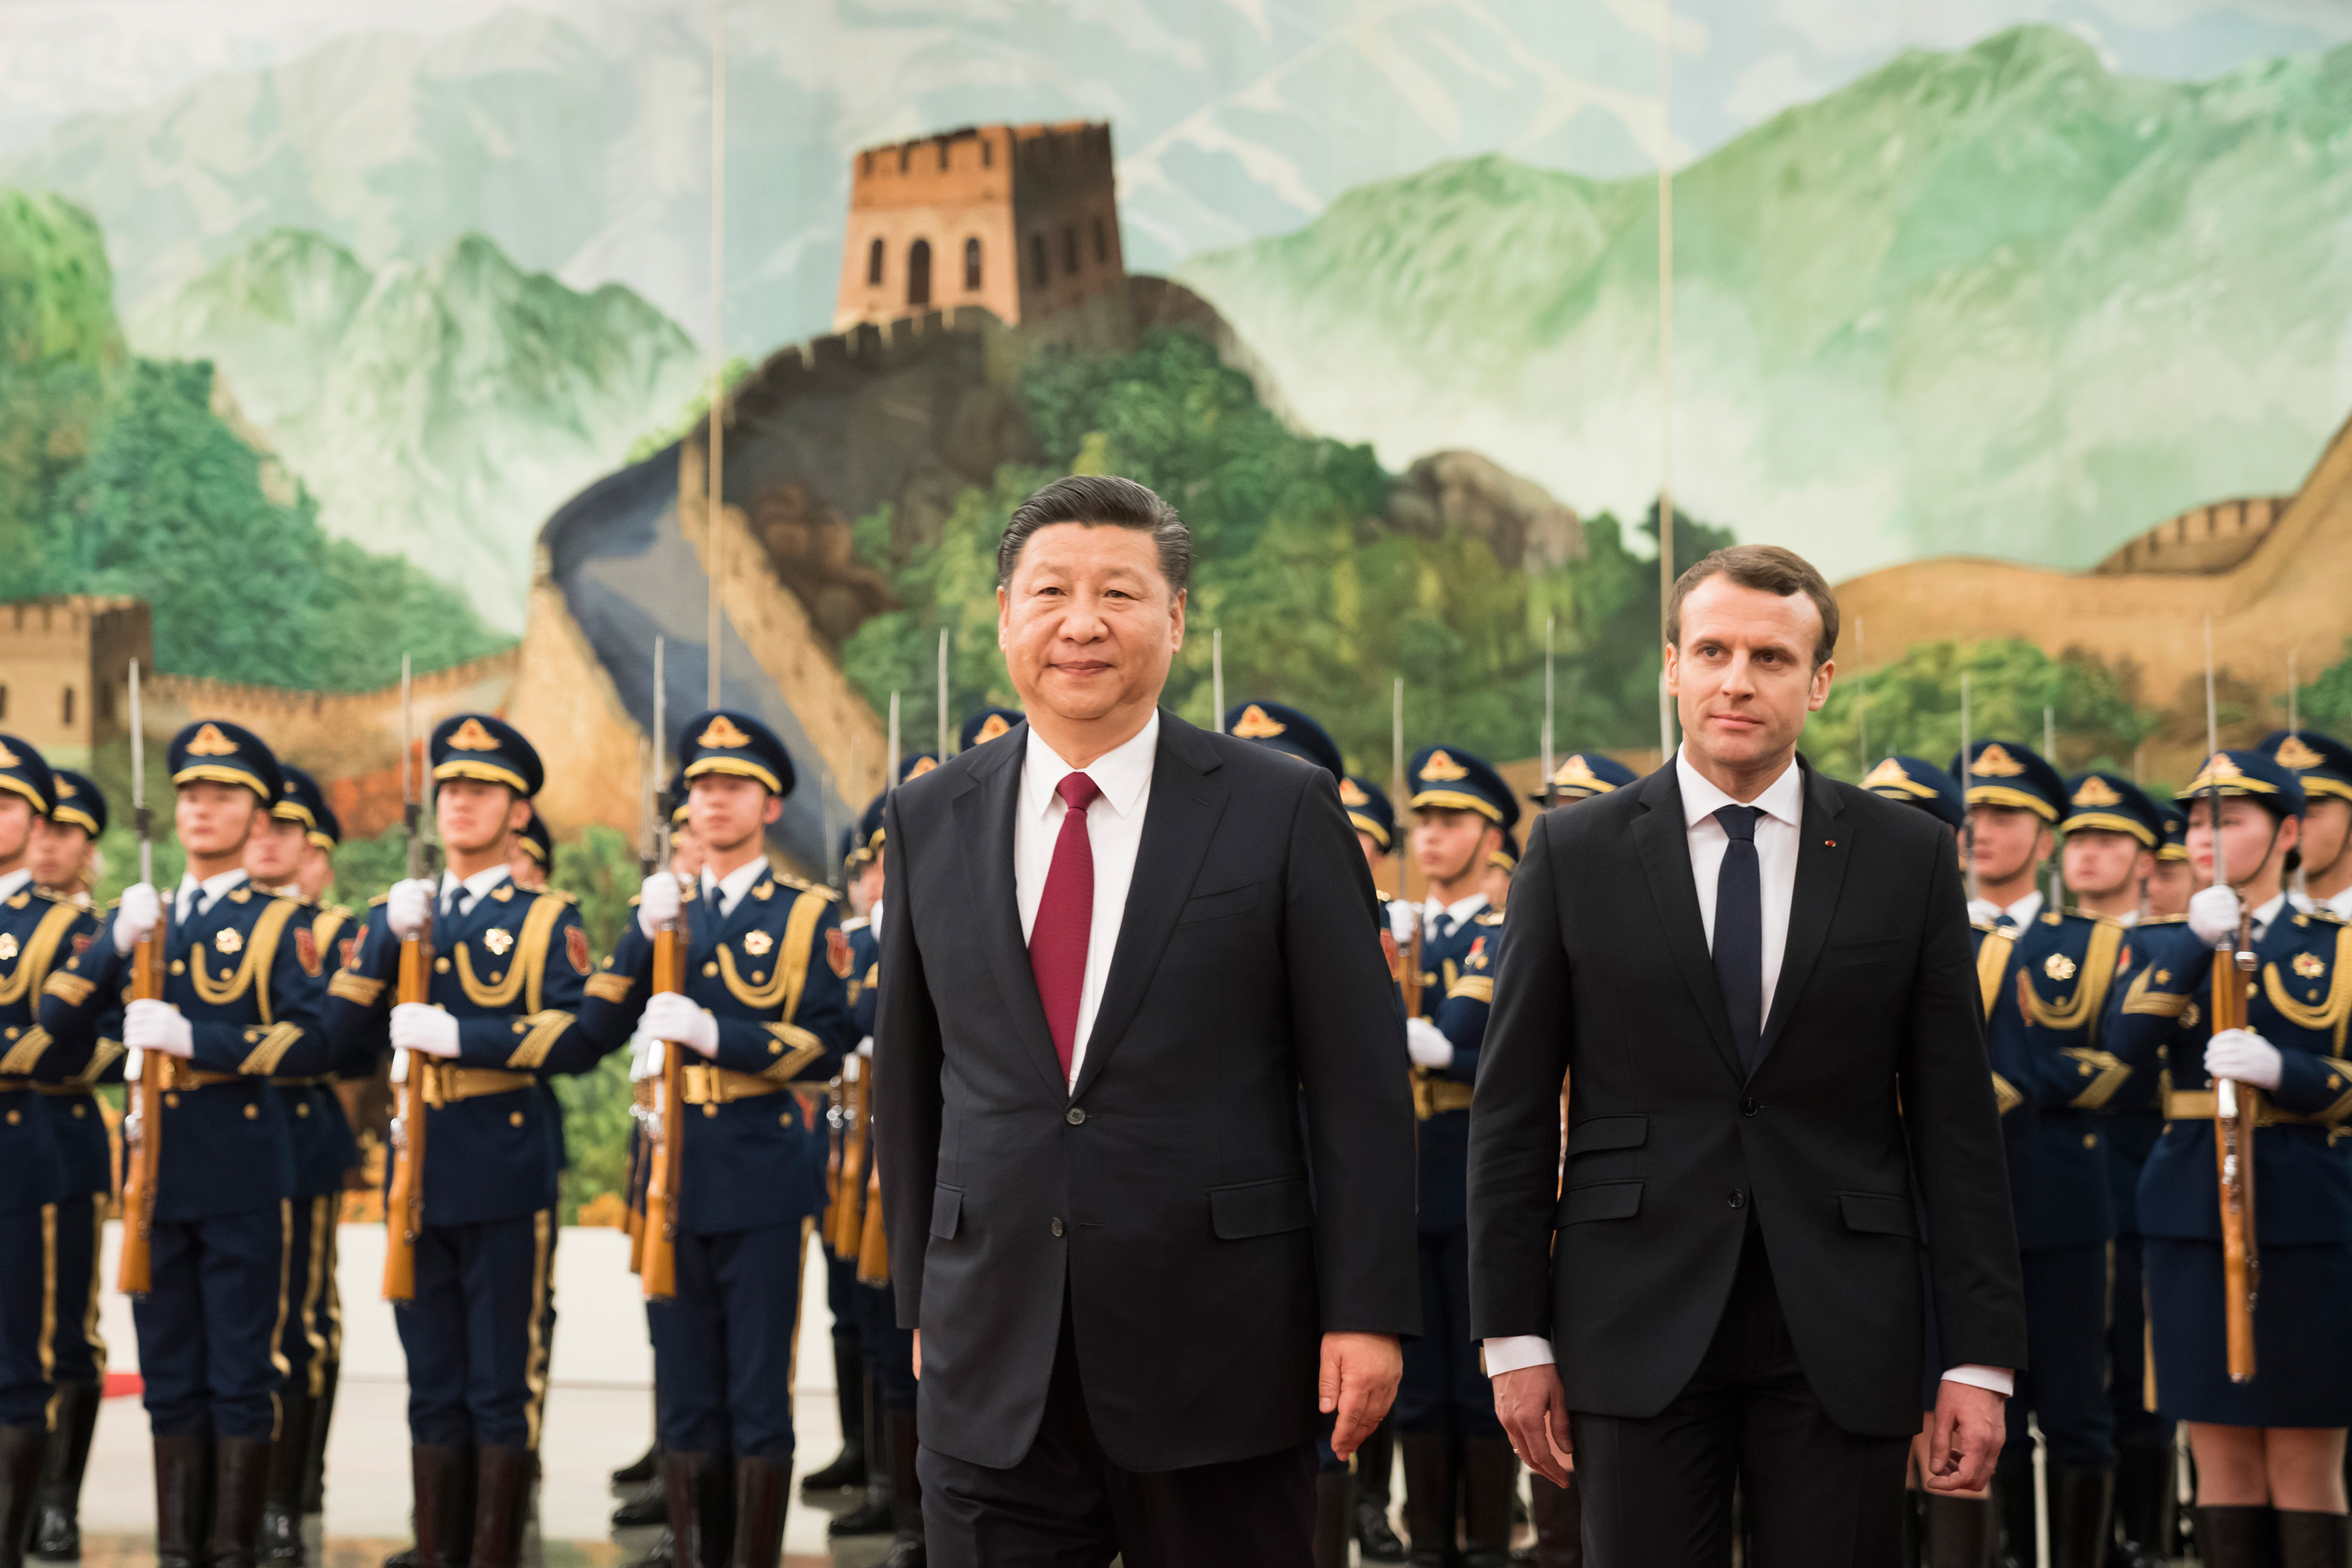 Chinese President Xi Jinping accompanies French President Emmanuel Macron to view an honour guard during a welcoming ceremony inside the Great Hall of the People on January 9, 2018 in Beijing, China.